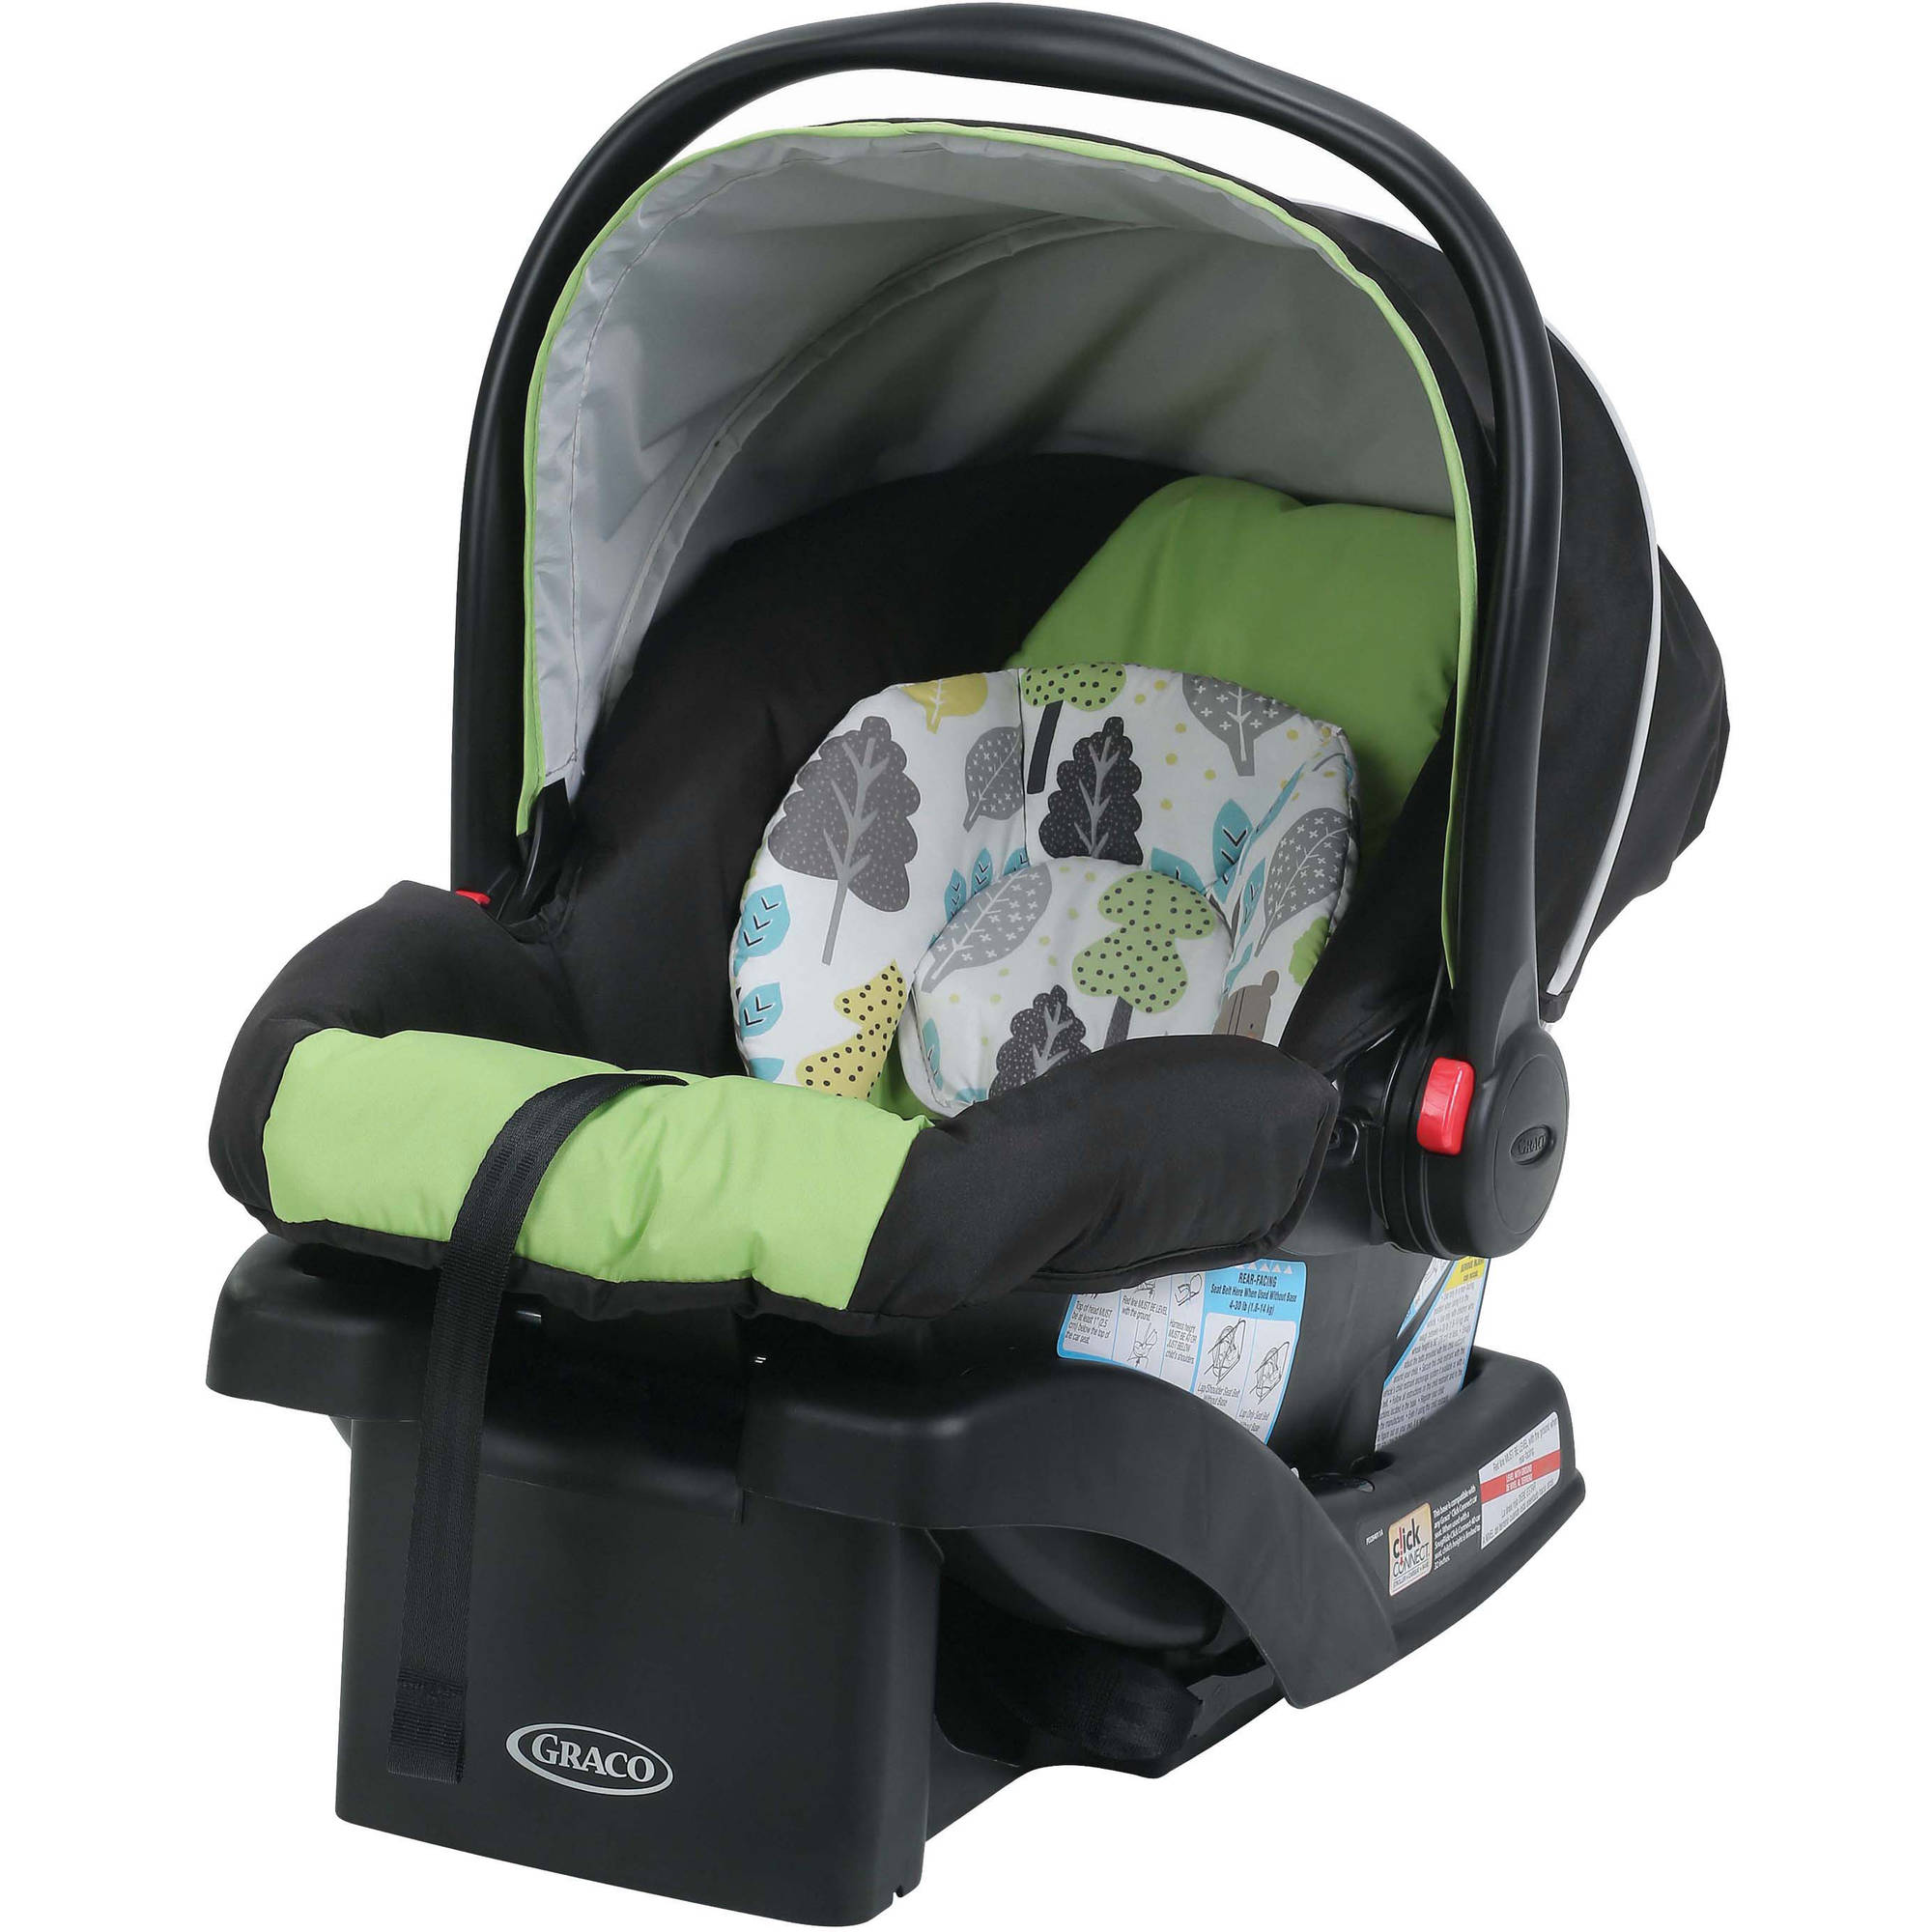 Graco SnugRide 30 Click Connect Infant Car Seat with Front Adjust, Bear Trail